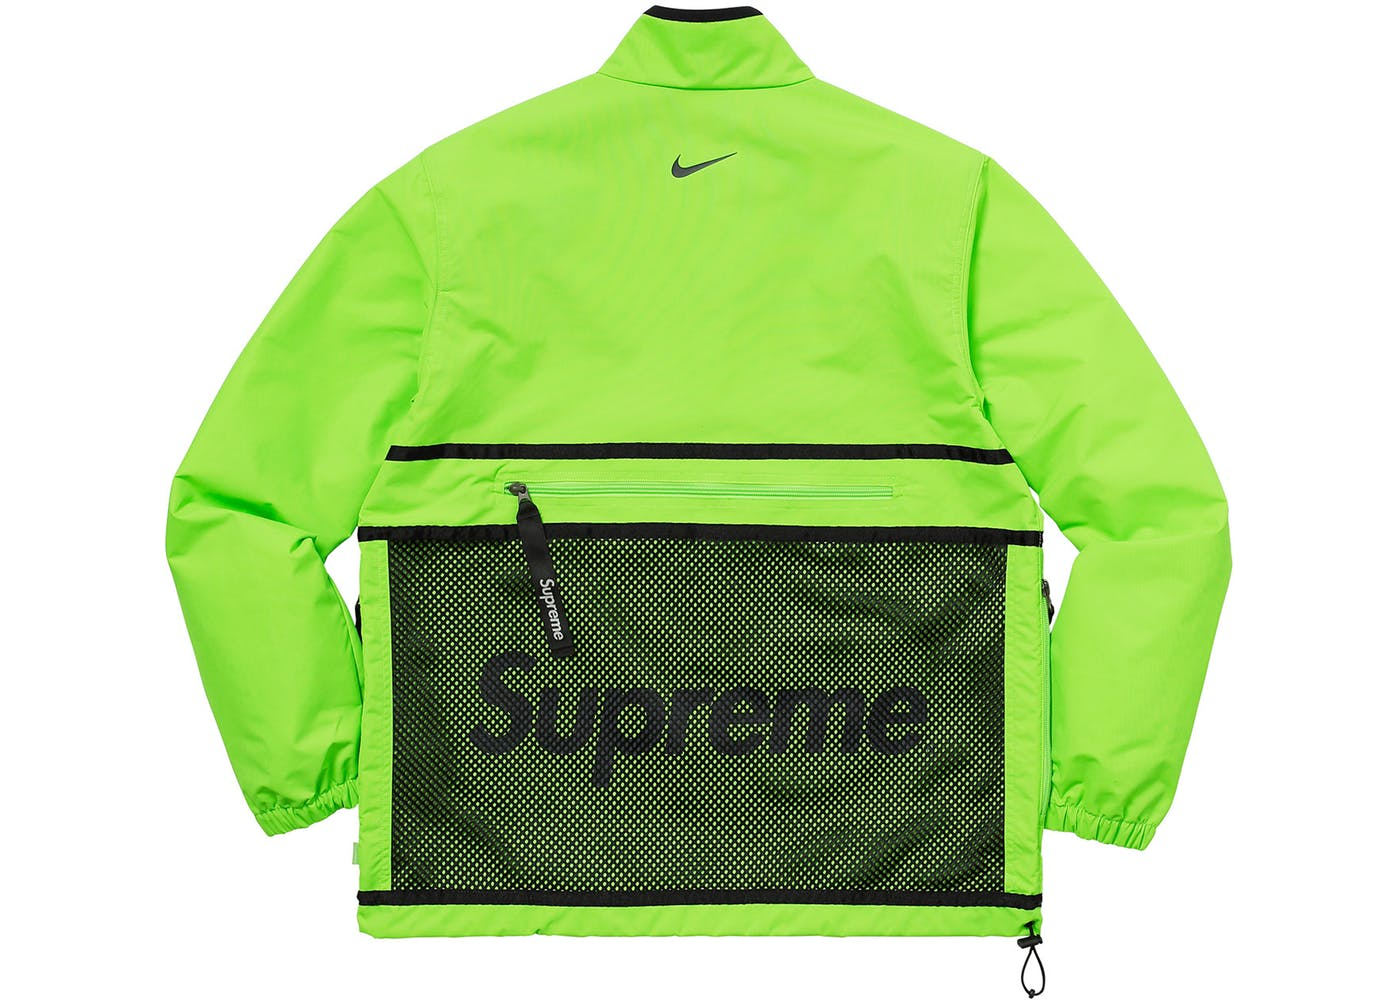 With Box Supreme X Nike Trail Running Jacket シュプリーム X